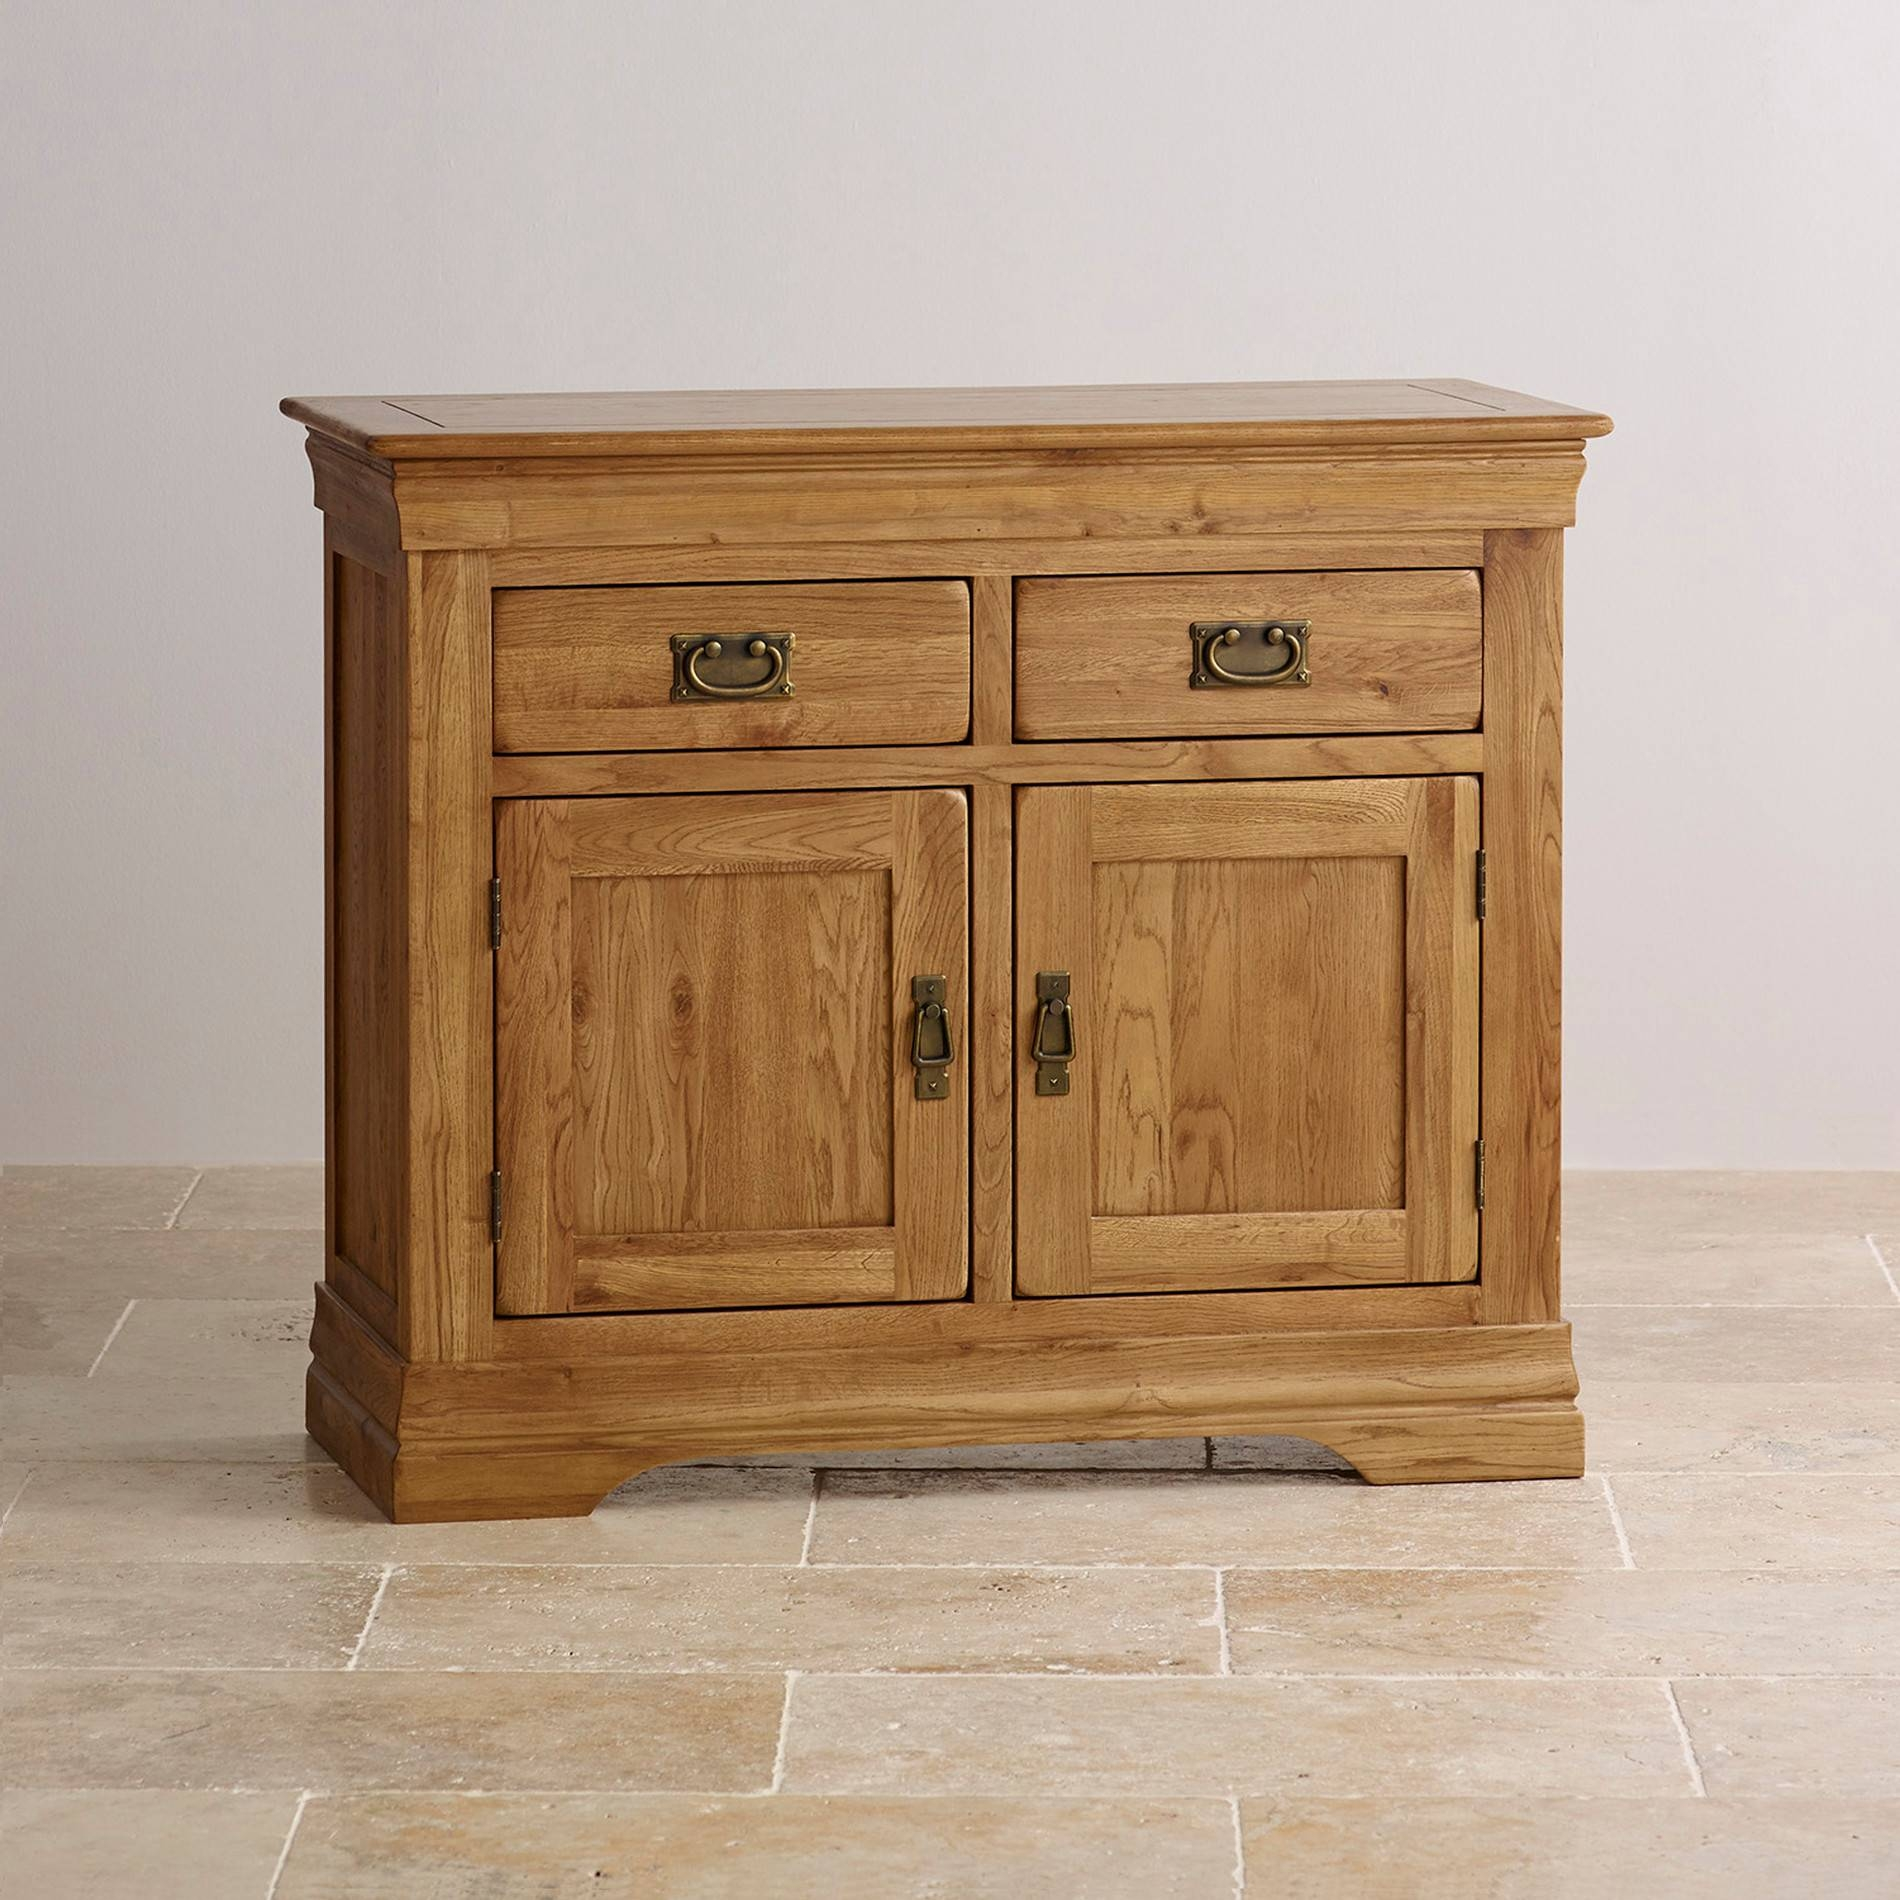 French Farmhouse Small Sideboard In Solid Oak Inside Small Wooden Sideboard (#12 of 20)